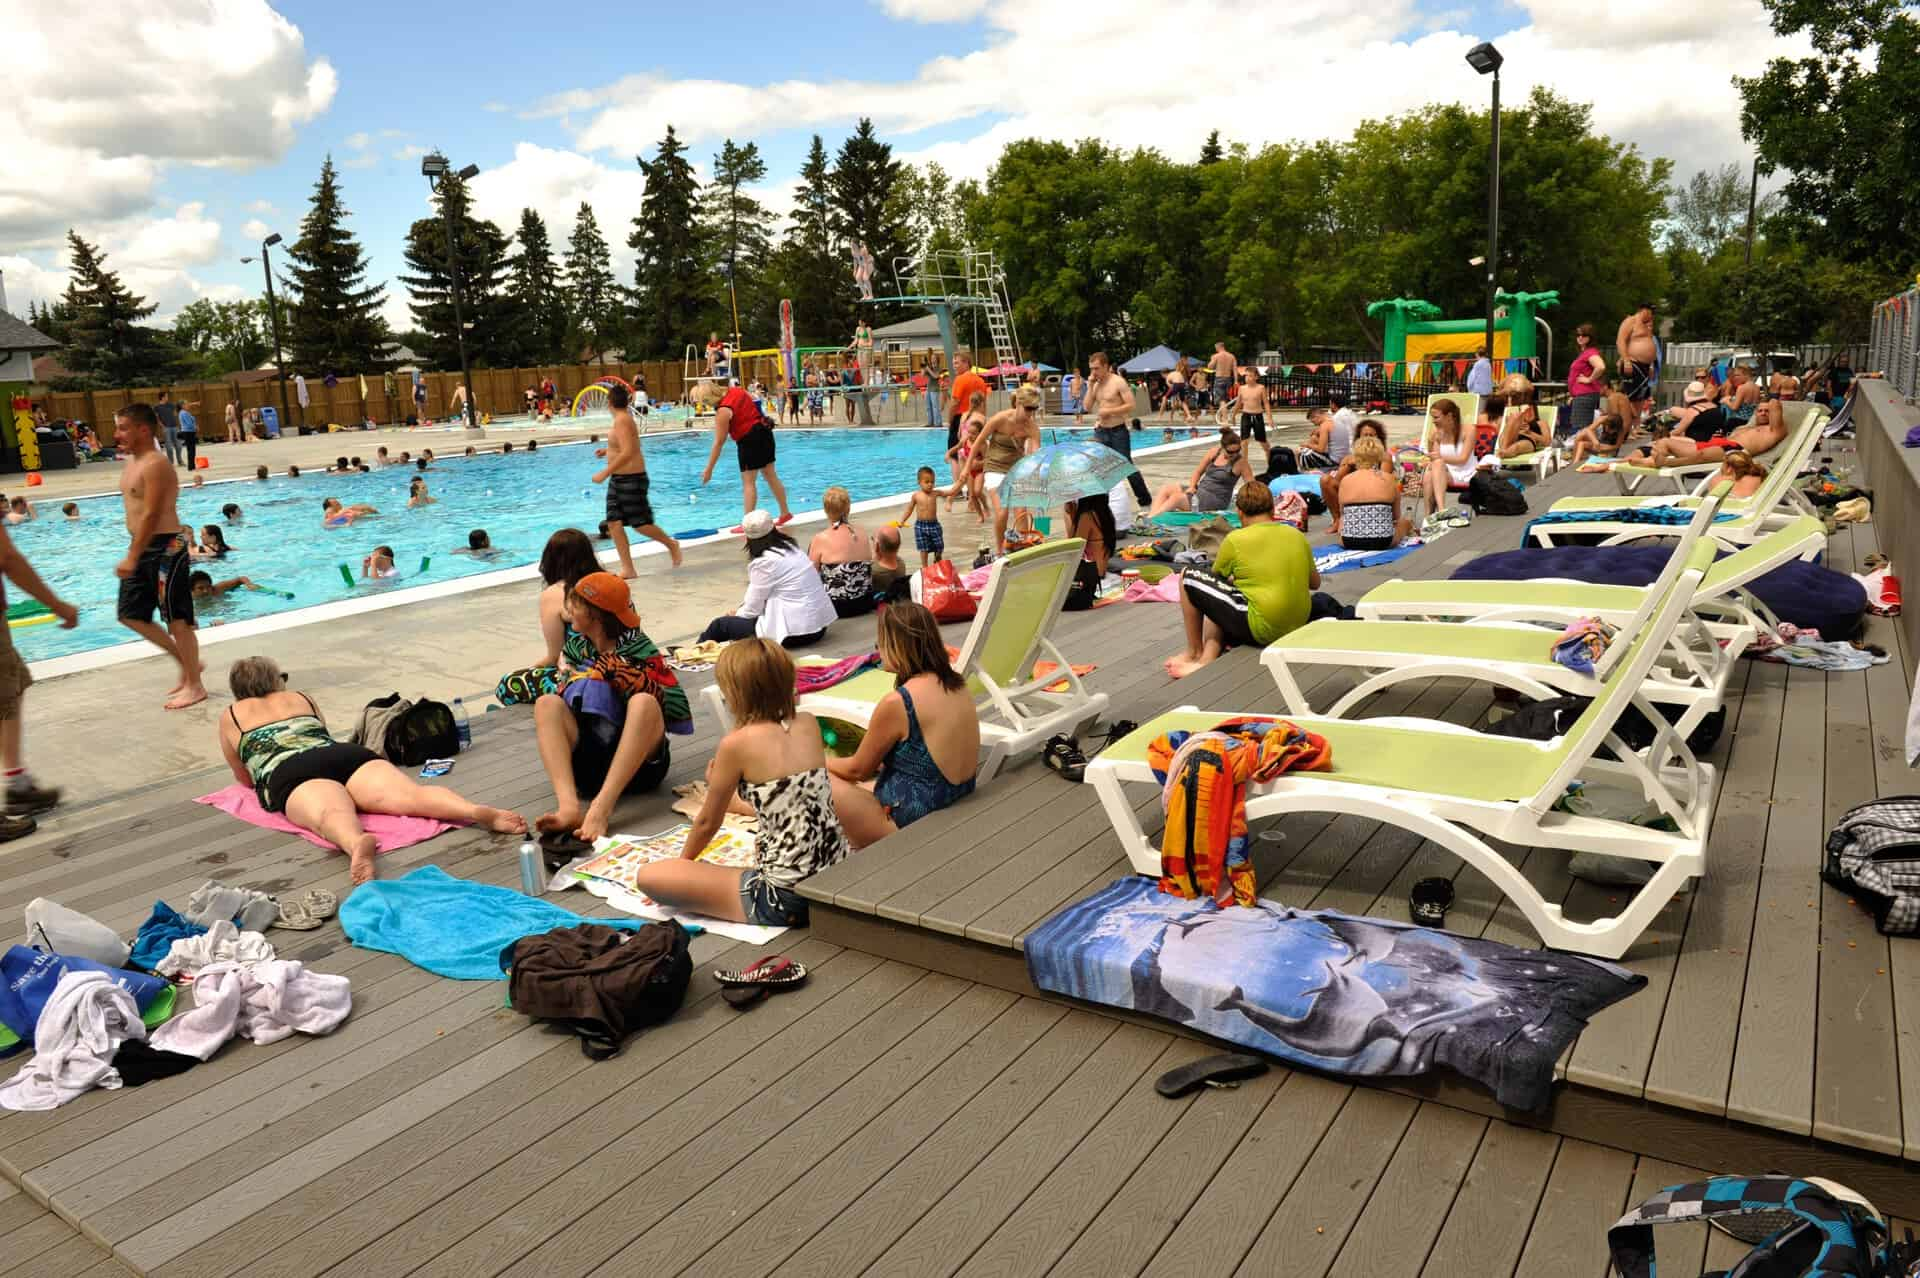 City of Edmonton Pools Will Continue Free Admission in 2019